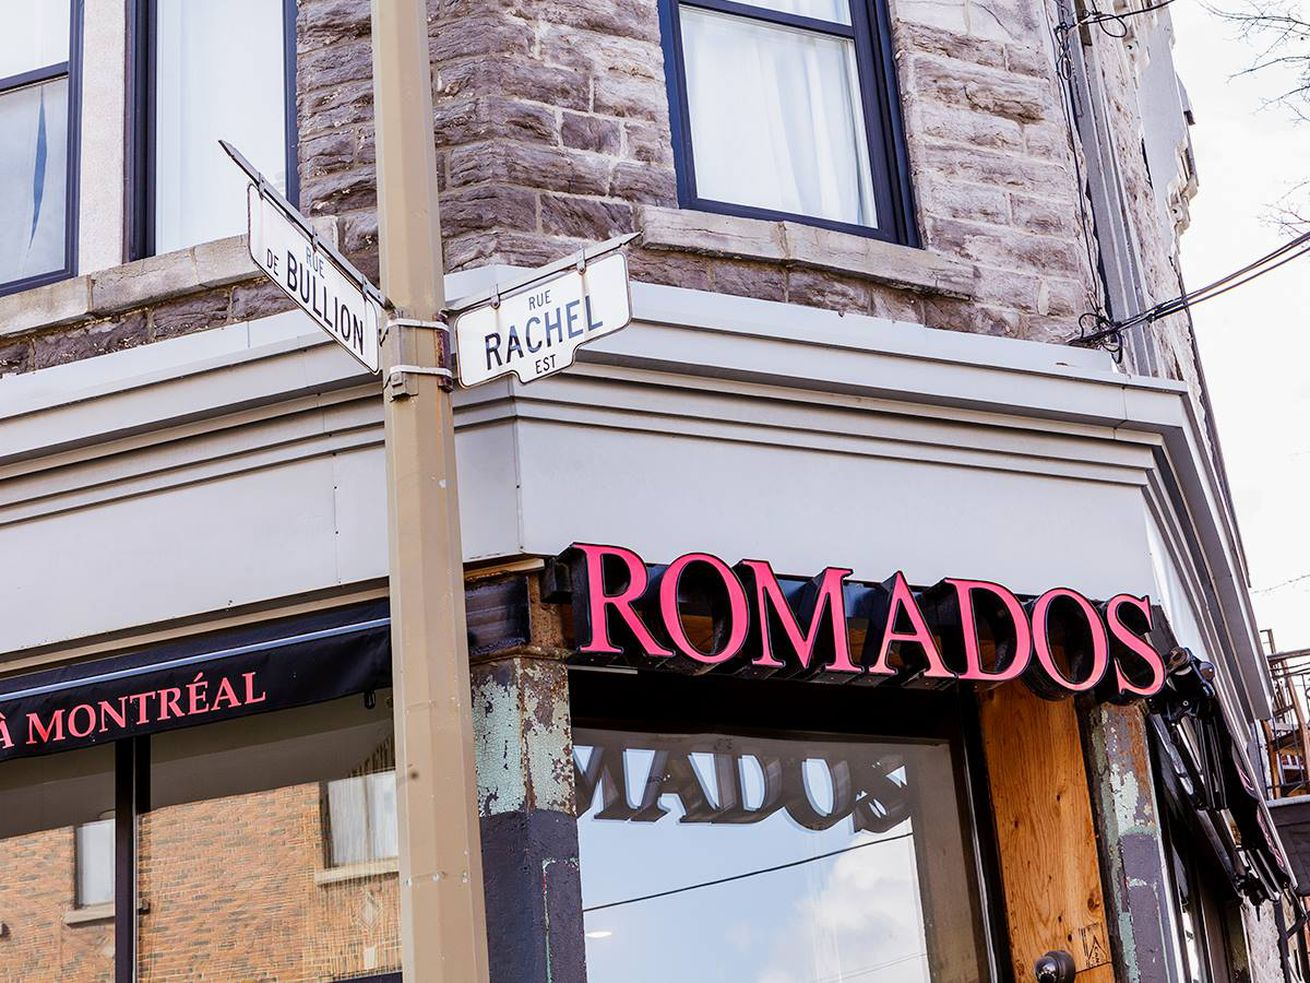 outside of restaurant with sign saying Romados